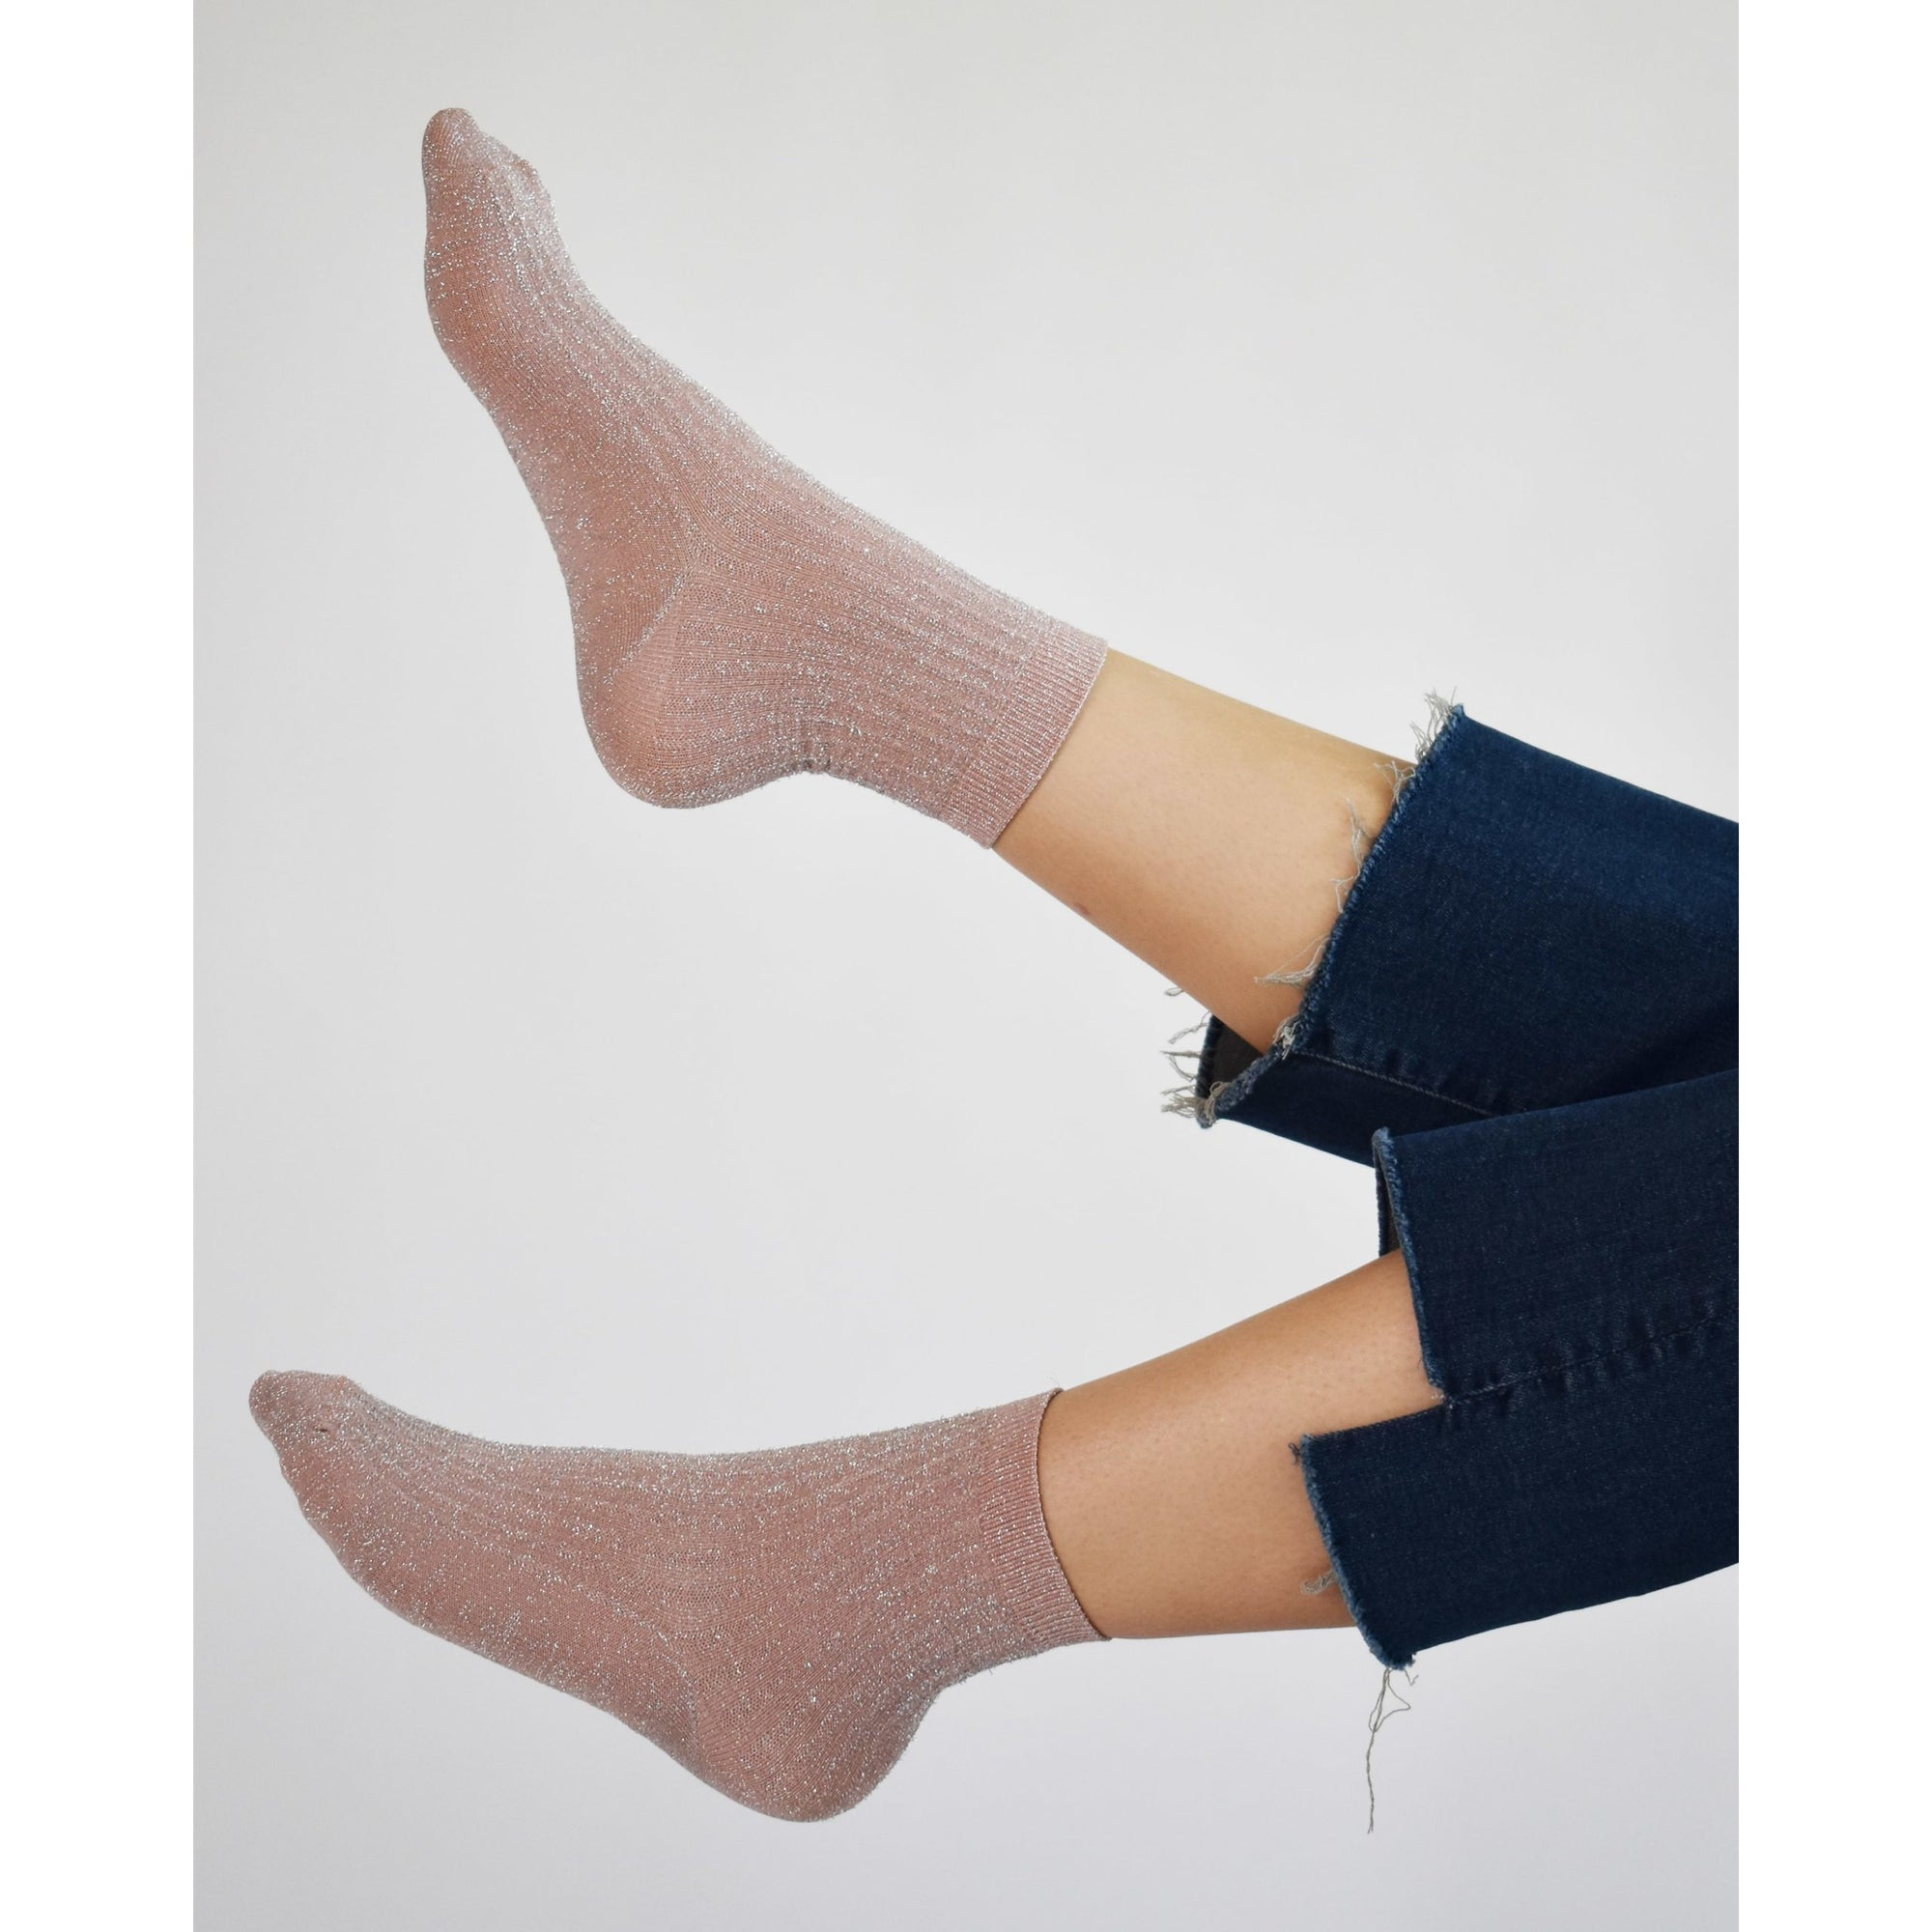 Stella Shimmery Socken - dusty rose